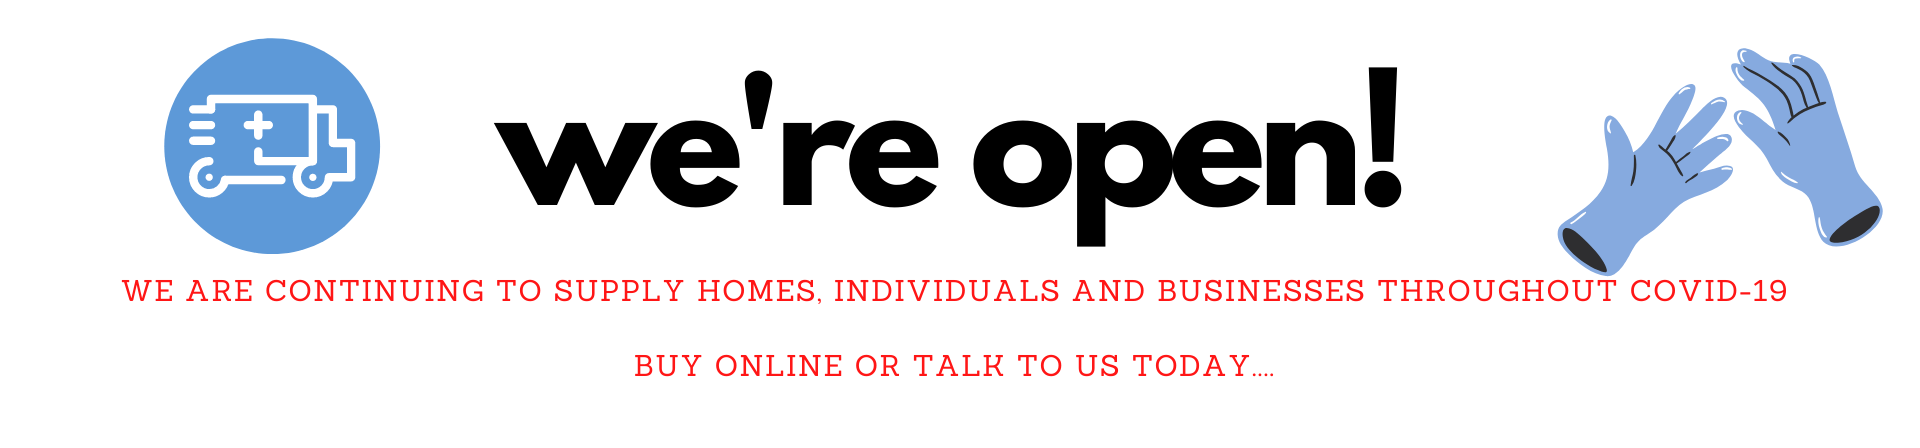 We're Open during Covid-19 to individuals, homes and businesses